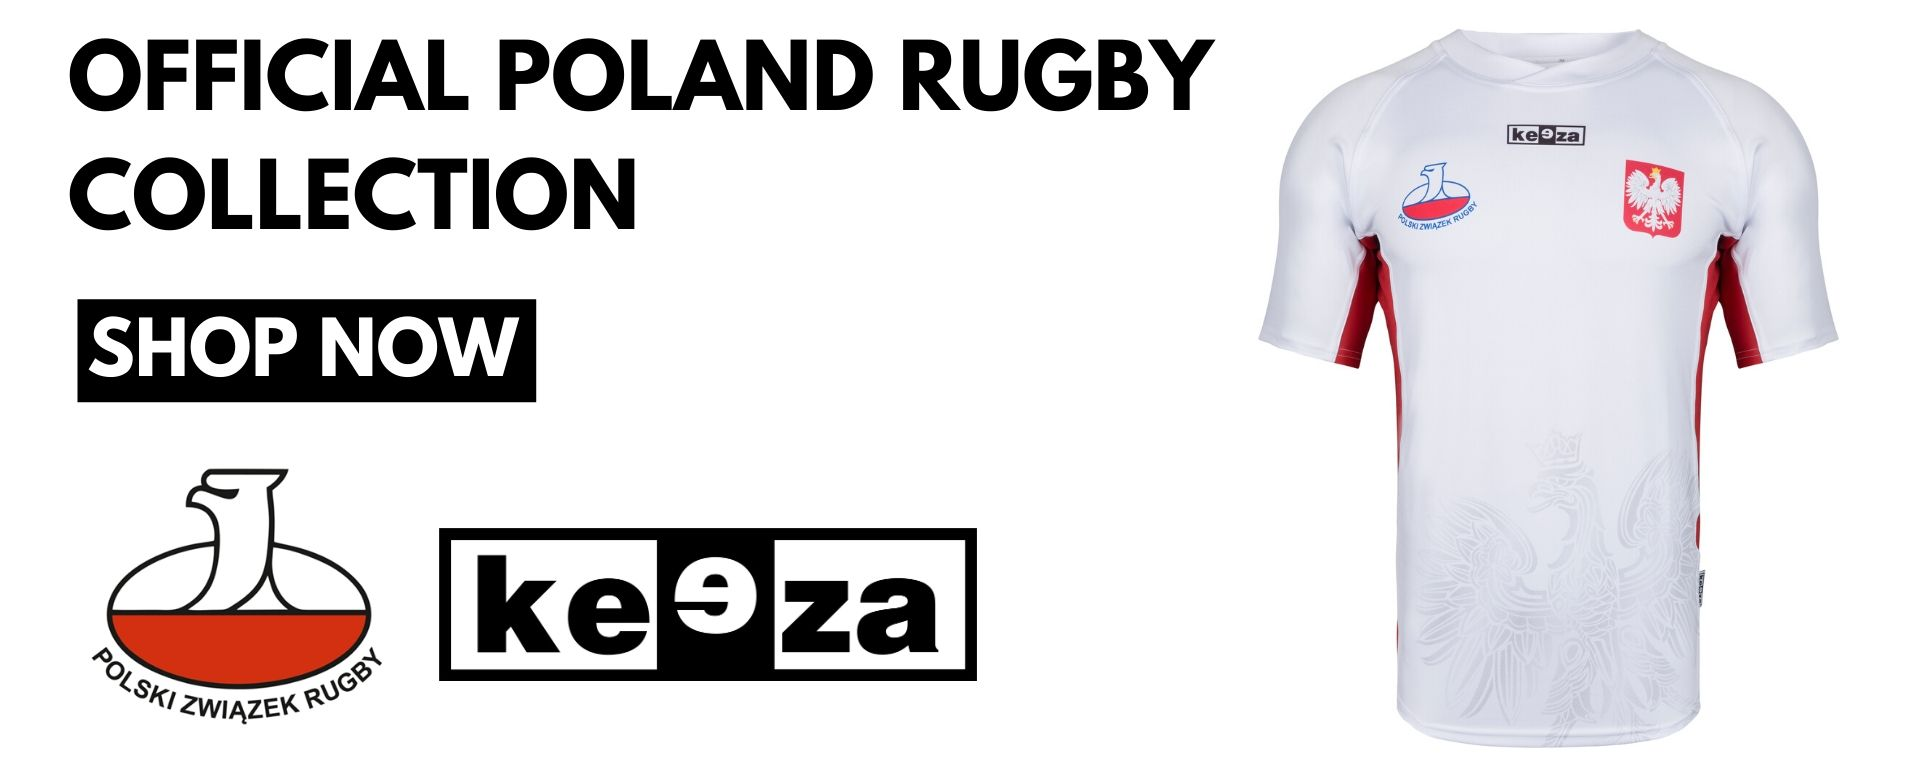 OFFICIAL POLAND RUGBY COLLECTION